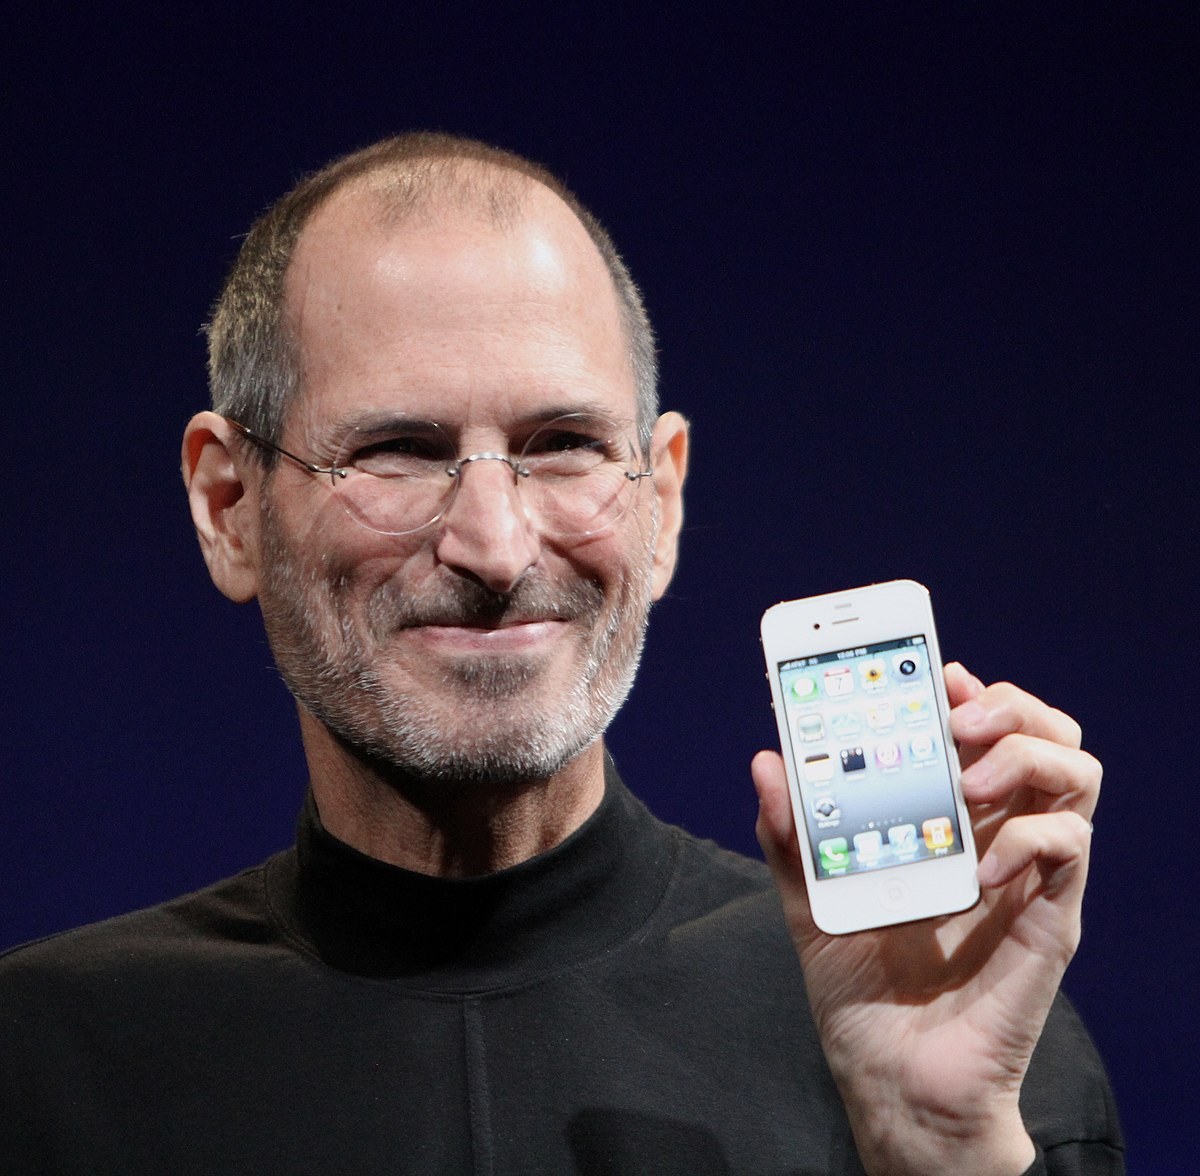 https://upload.wikimedia.org/wikipedia/commons/thumb/b/b9/Steve_Jobs_Headshot_2010-CROP.jpg/1200px-Steve_Jobs_Headshot_2010-CROP.jpg